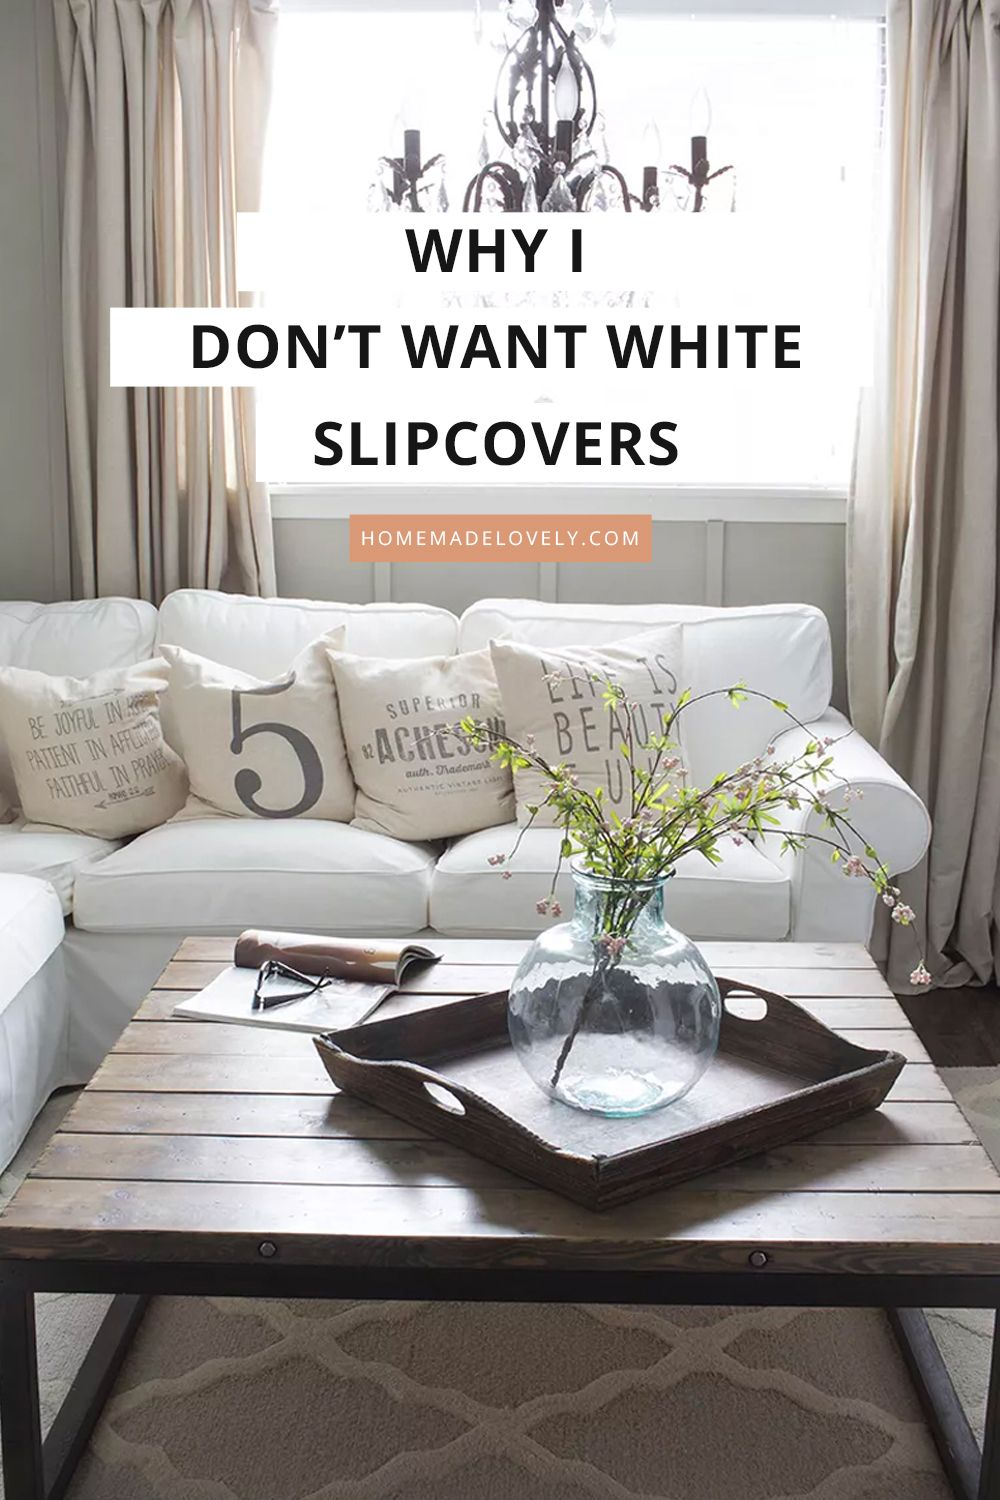 White Slipcovers Are Not Easy To Keep Clean In 2020 Coffee Table Diy Table Restoration Hardware Style